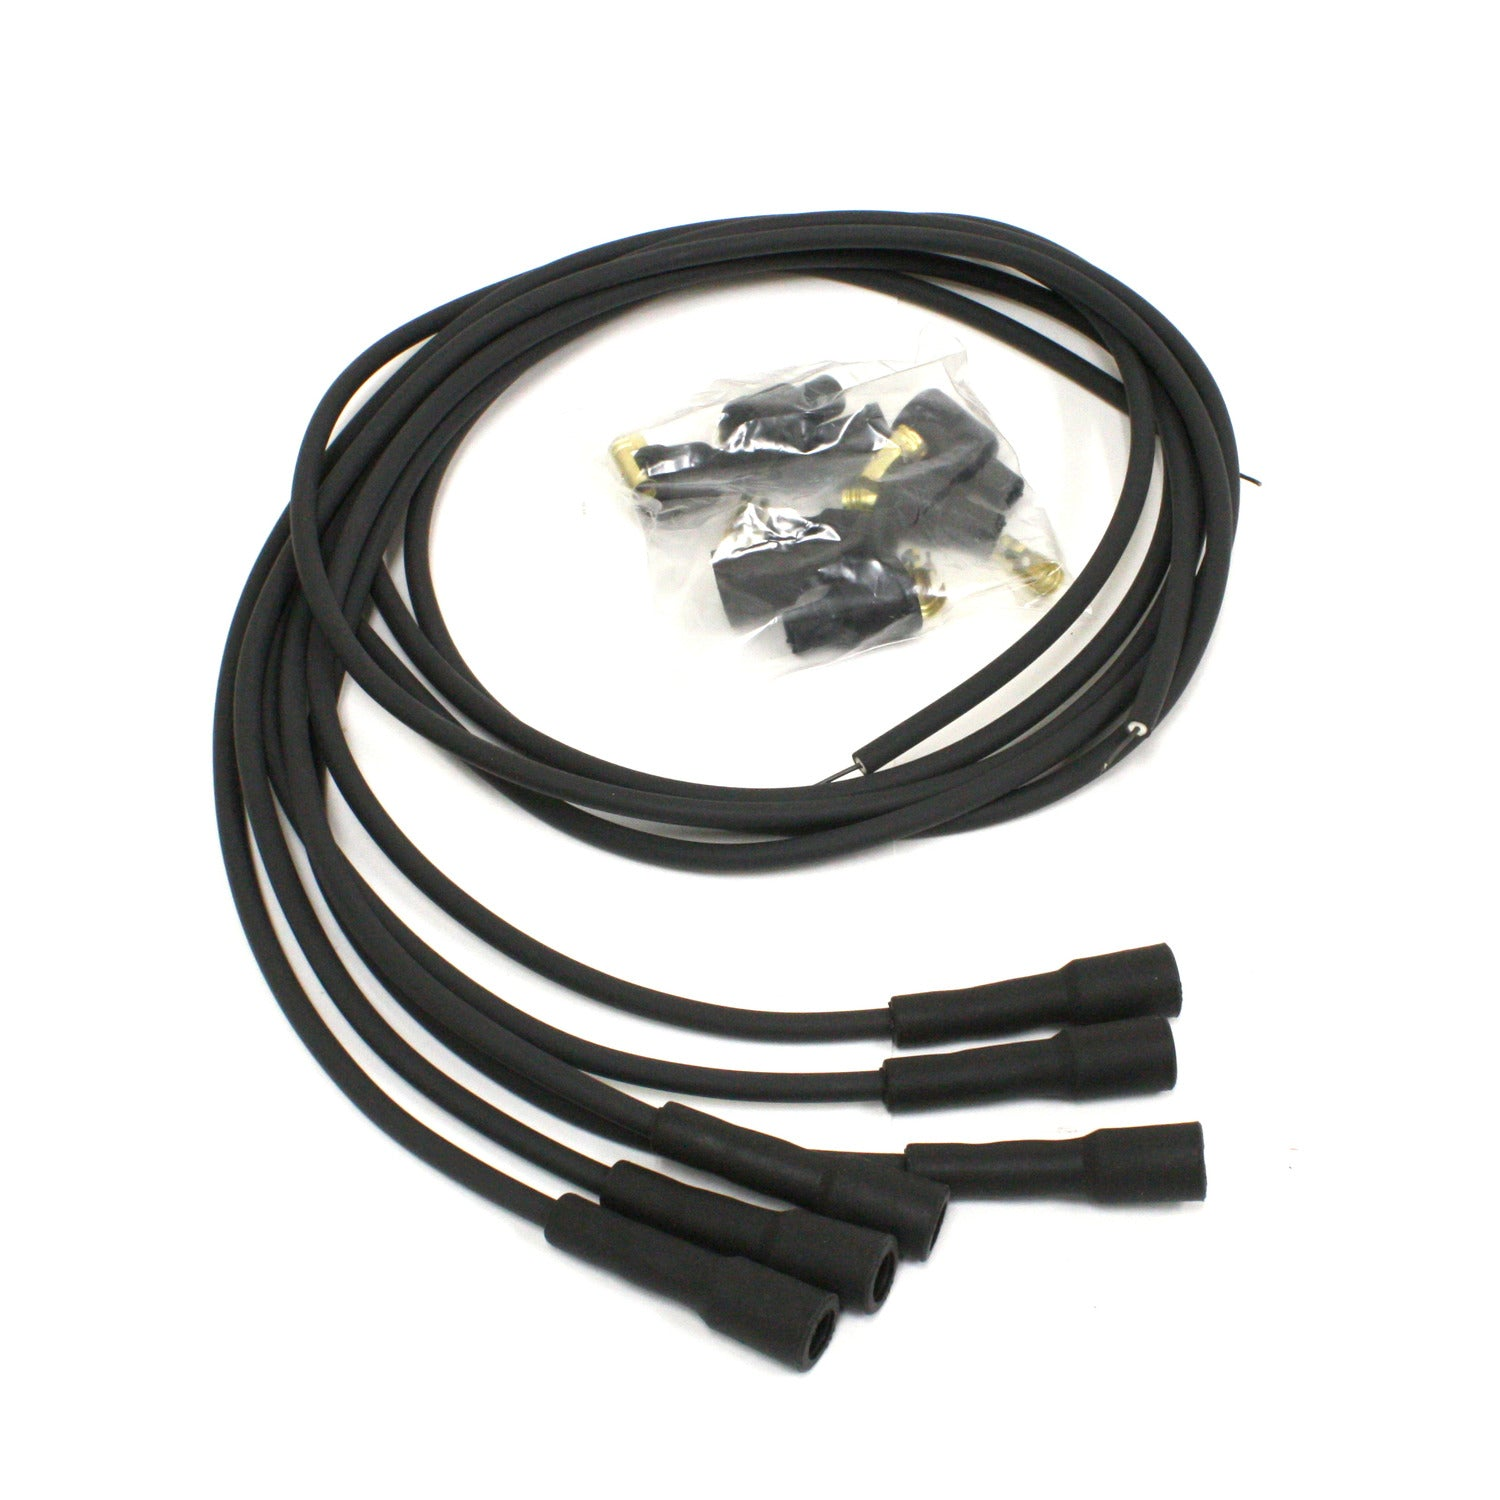 PerTronix 706180 Flame-Thrower Spark Plug Wires 6 cyl British Universal 180 Degree Black